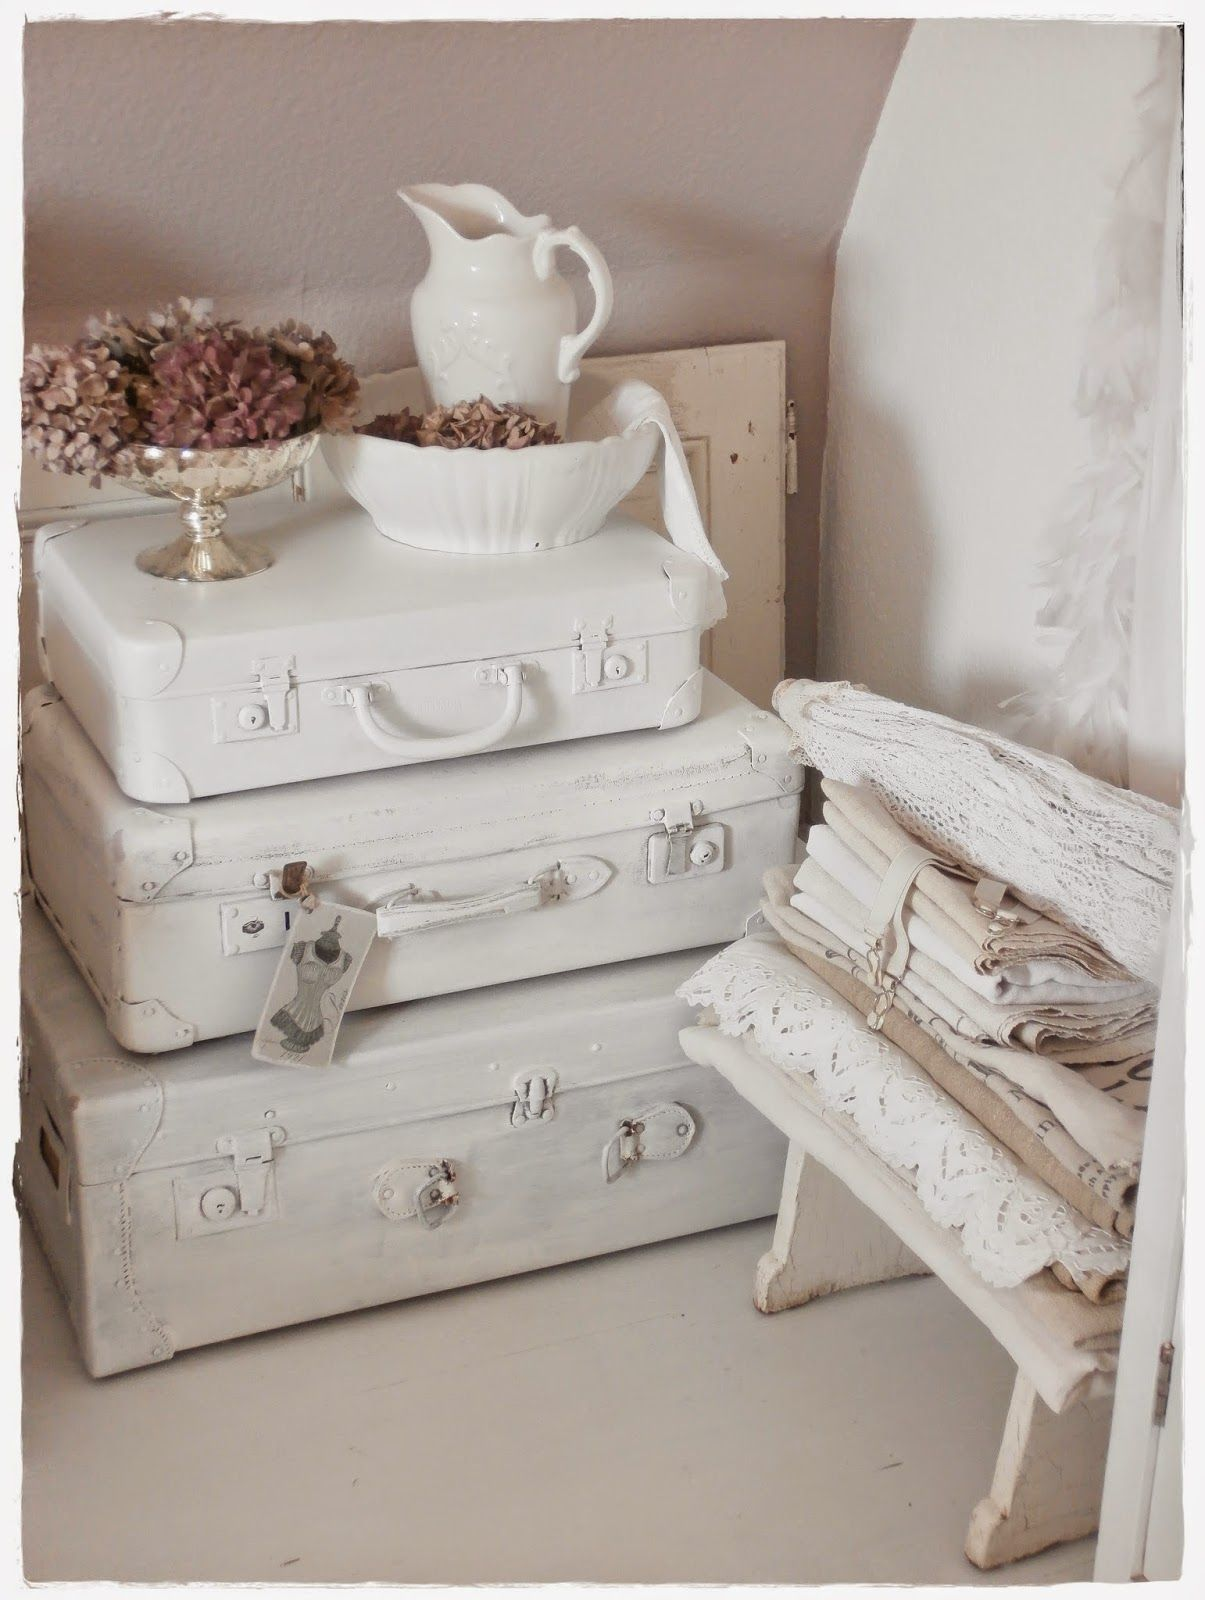 shabby chic shabby chic decor pinterest valises bienvenue chez nous et deco recup. Black Bedroom Furniture Sets. Home Design Ideas